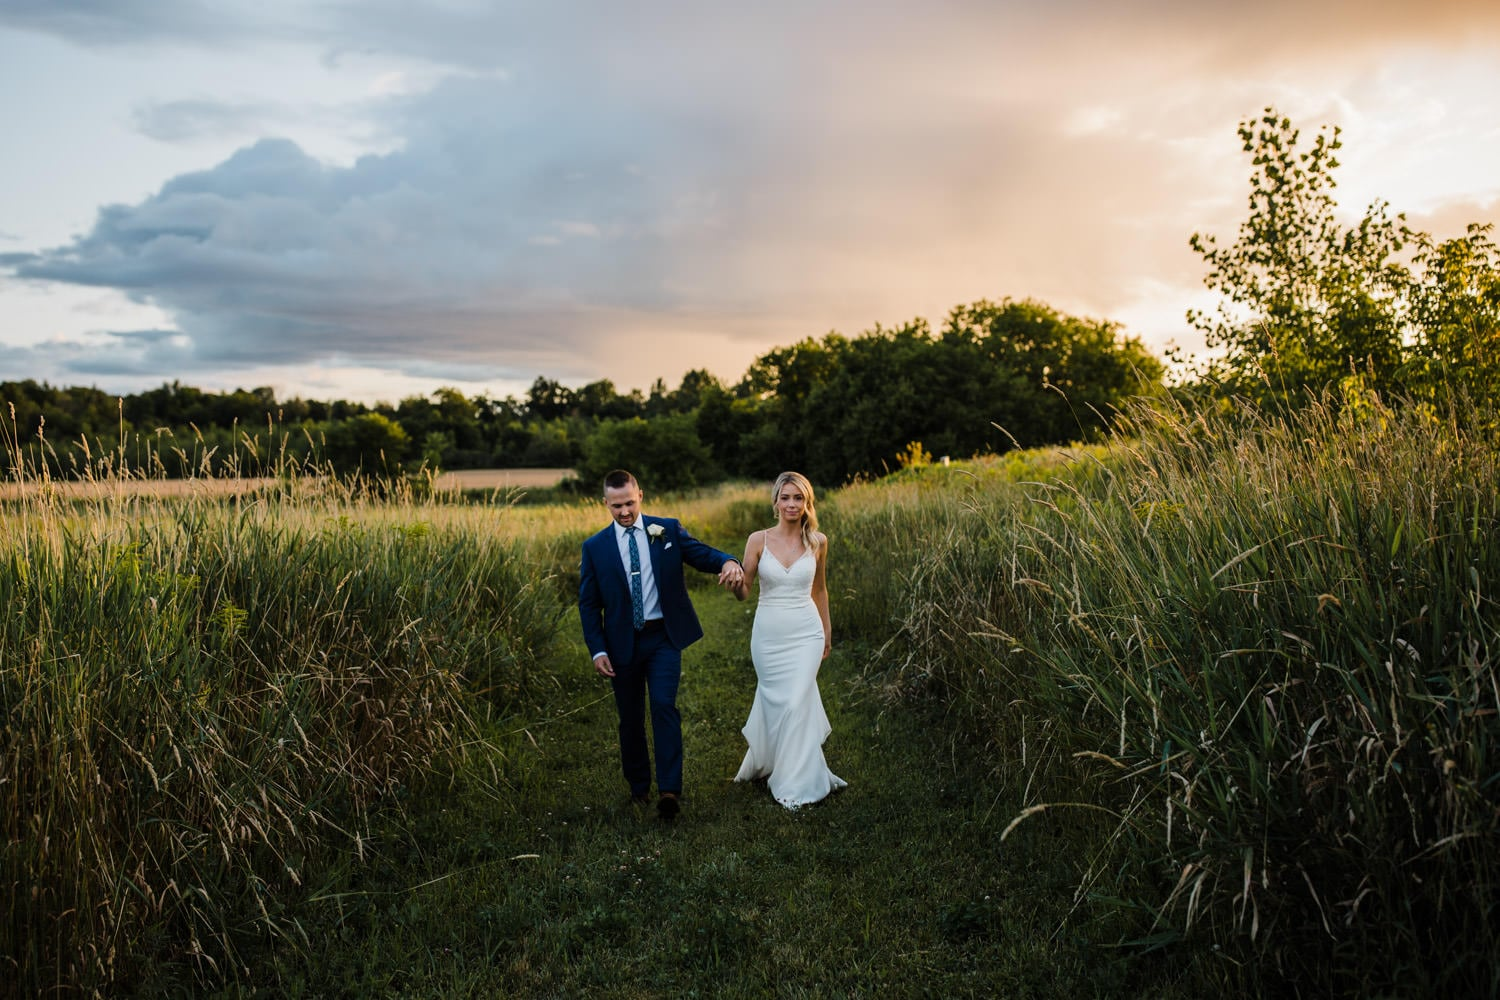 bride and groom take sunset walk together through field - summer strathmere wedding - carley teresa photography